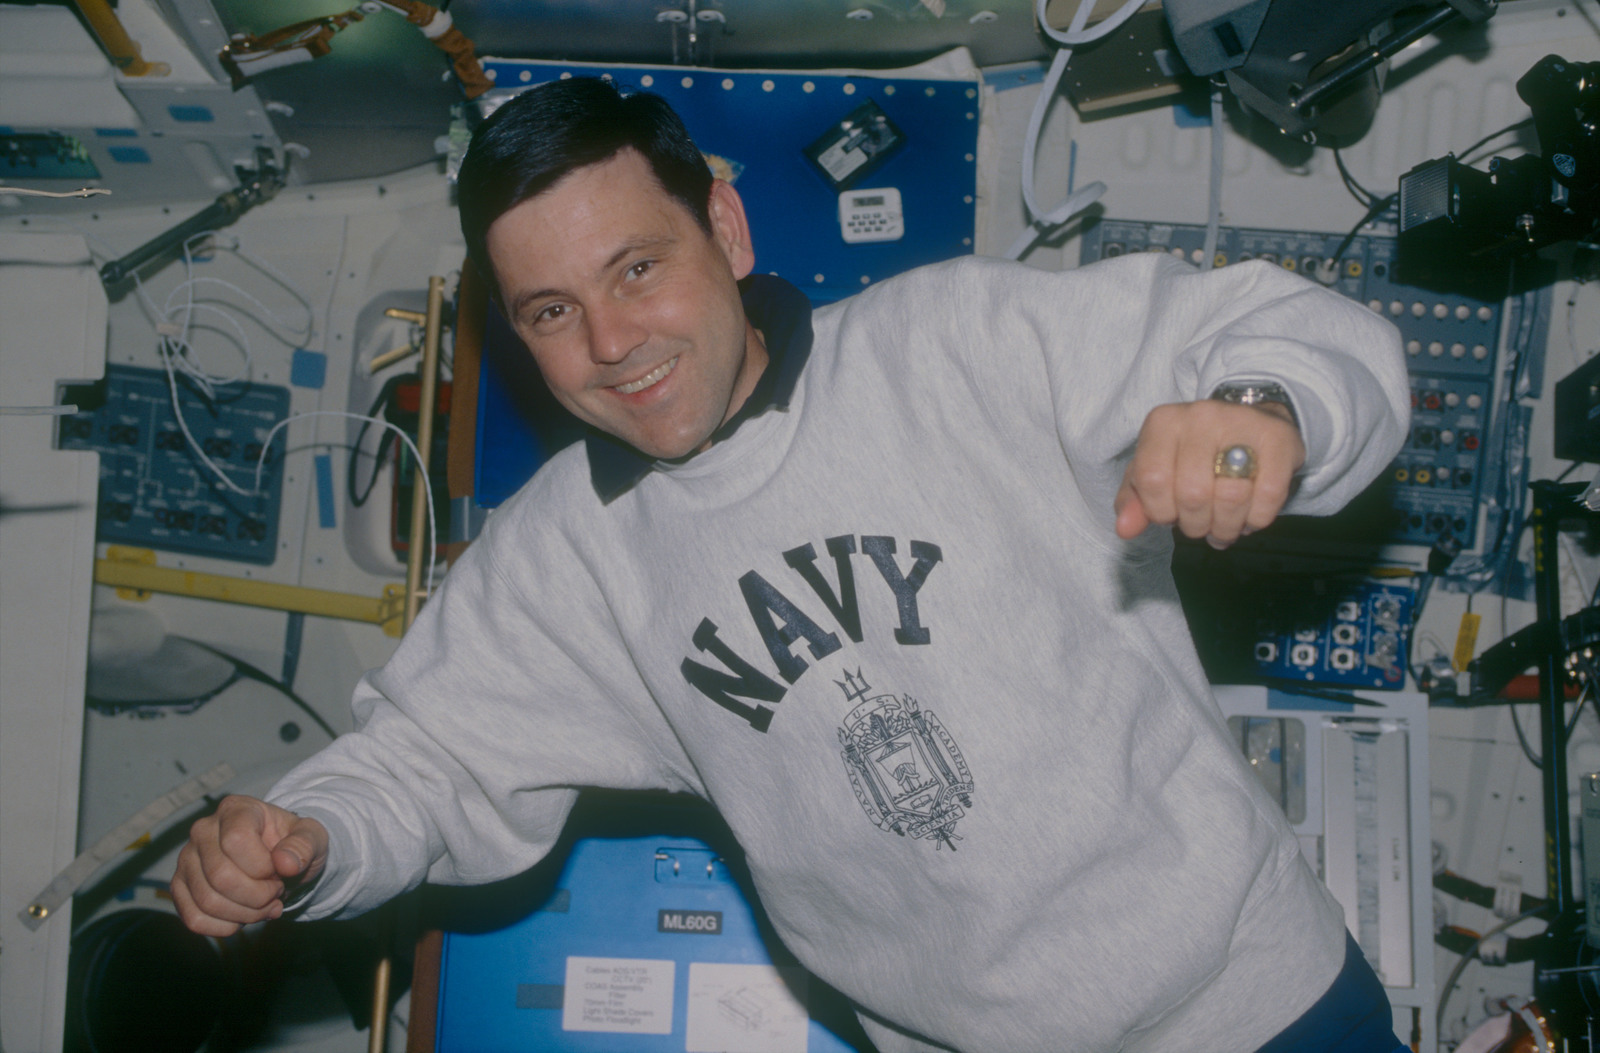 STS053-07-005 - STS-053 - Crewmember in the MDDK wearing a U. S. Navy sweat shirt